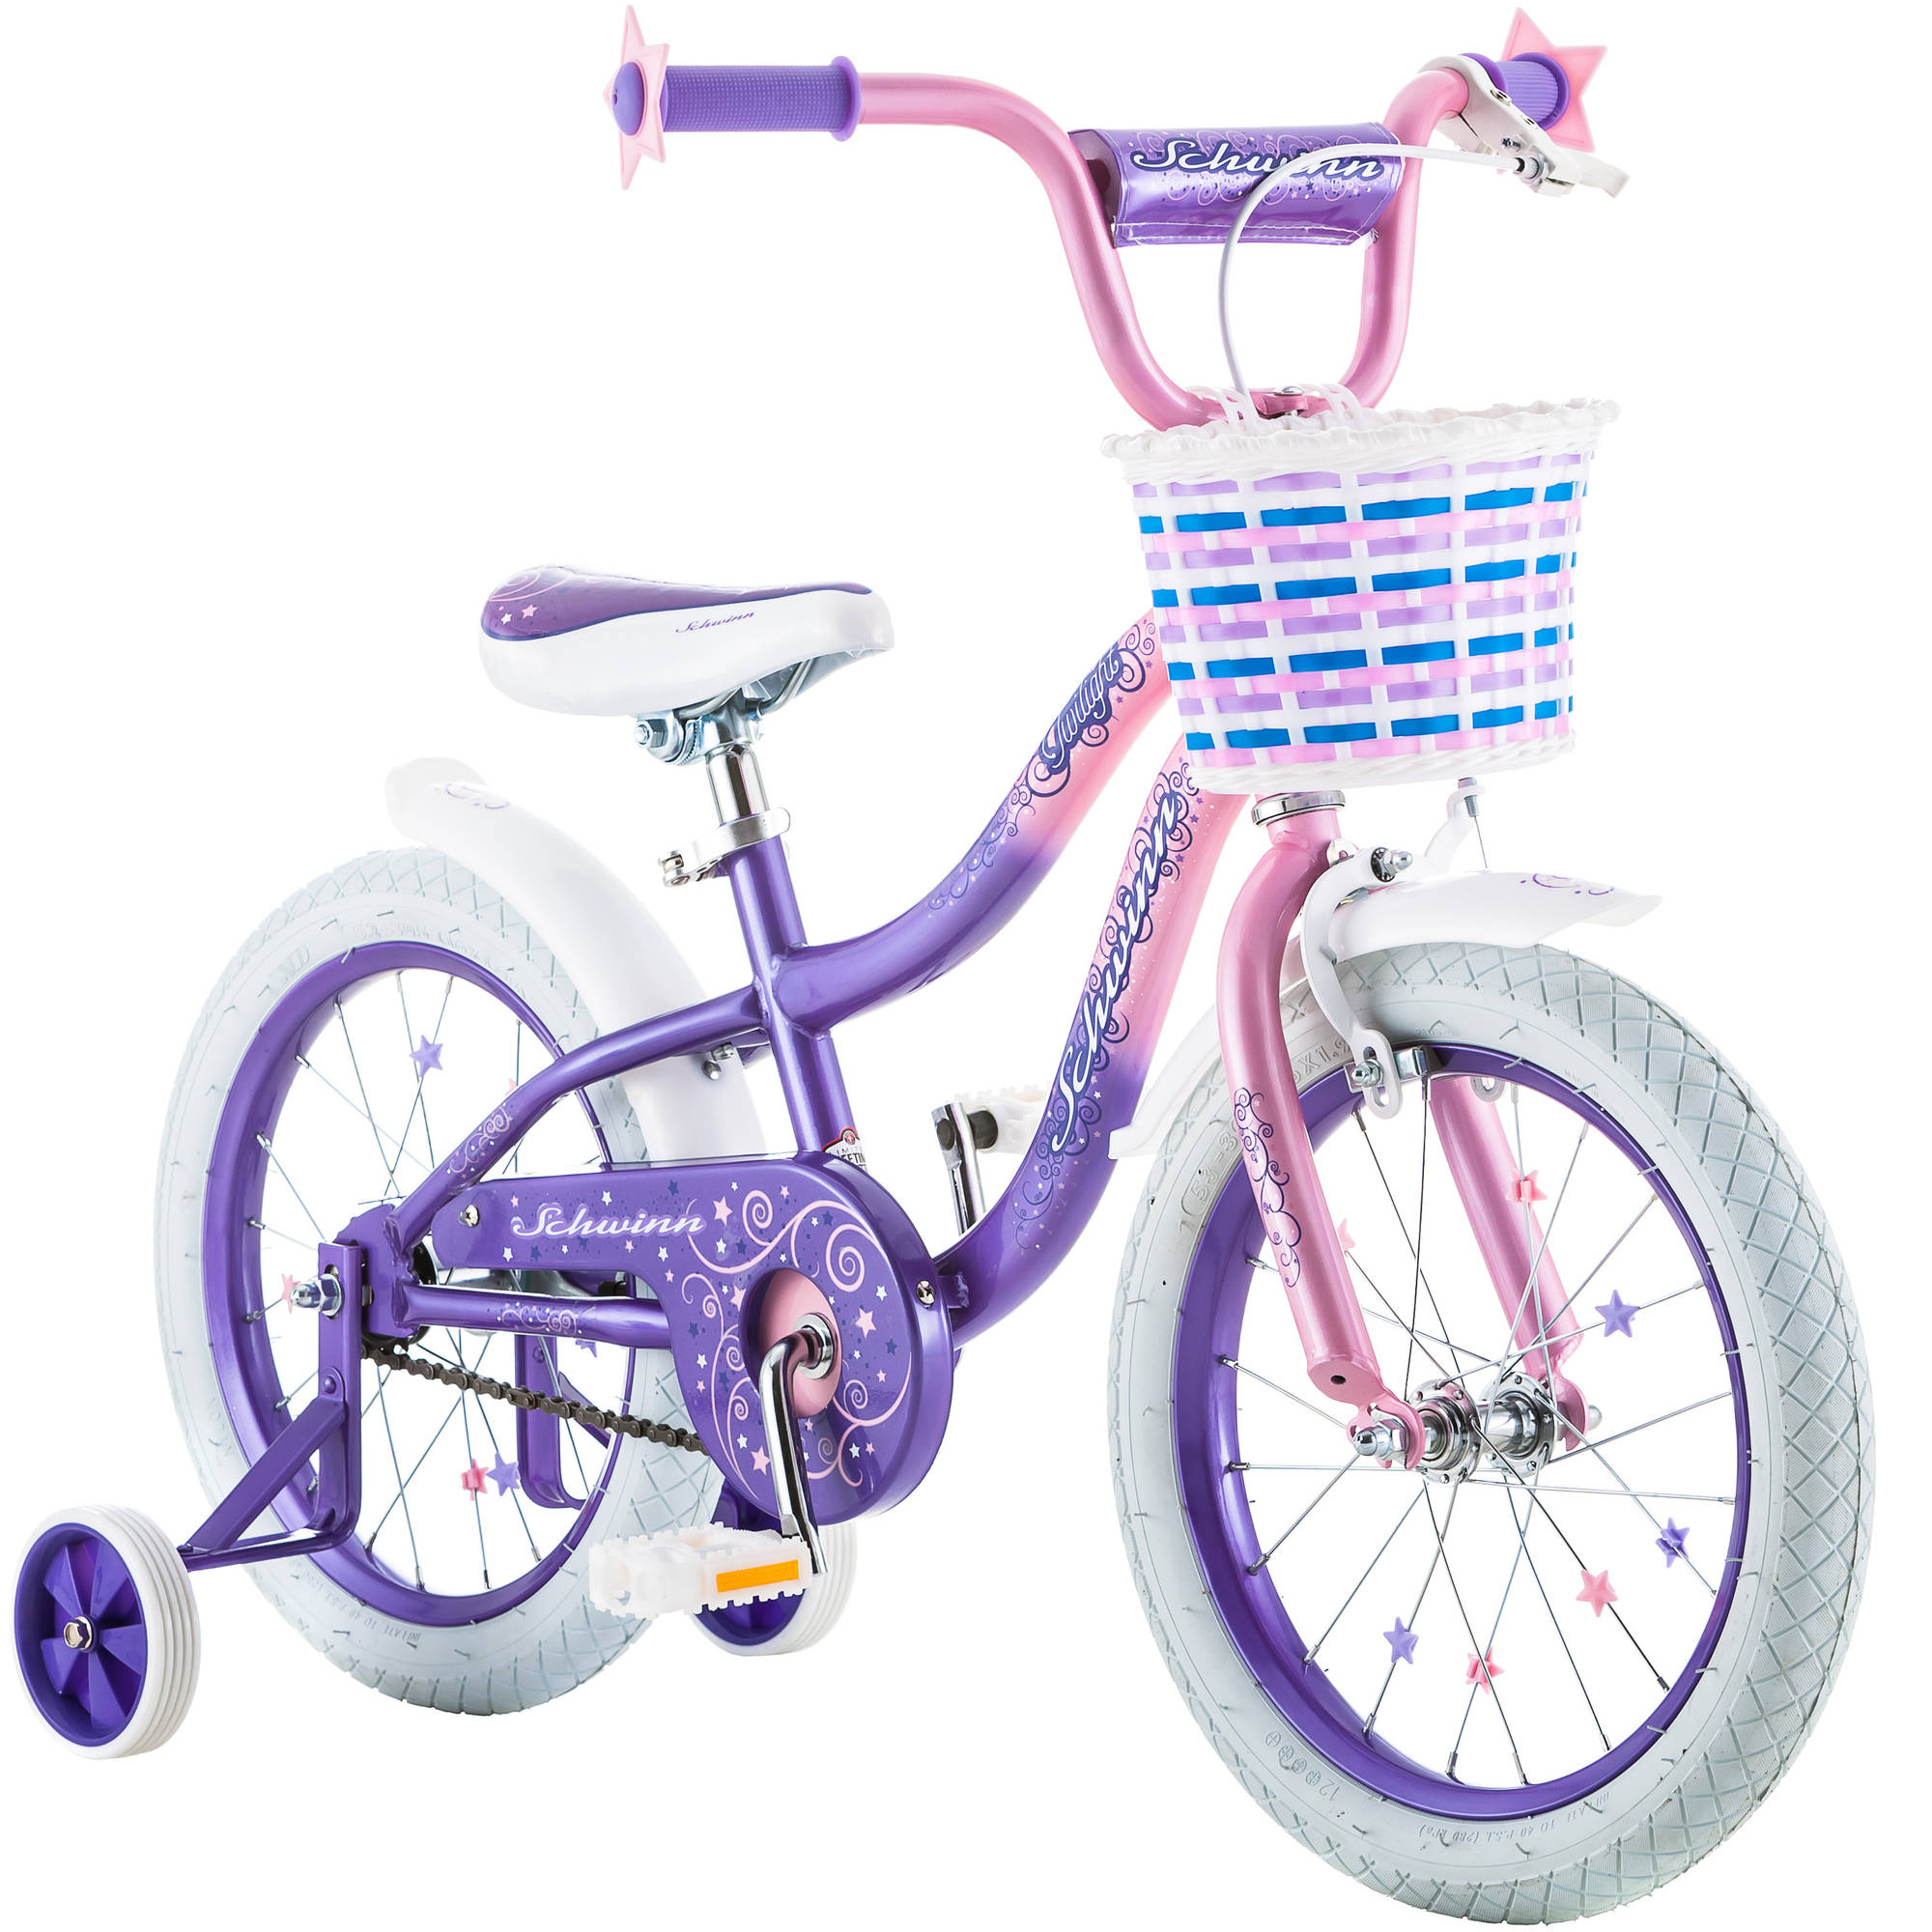 "16"" Schwinn Twilight Girls' Bike, Pink   Purple by Pacific Cycle"